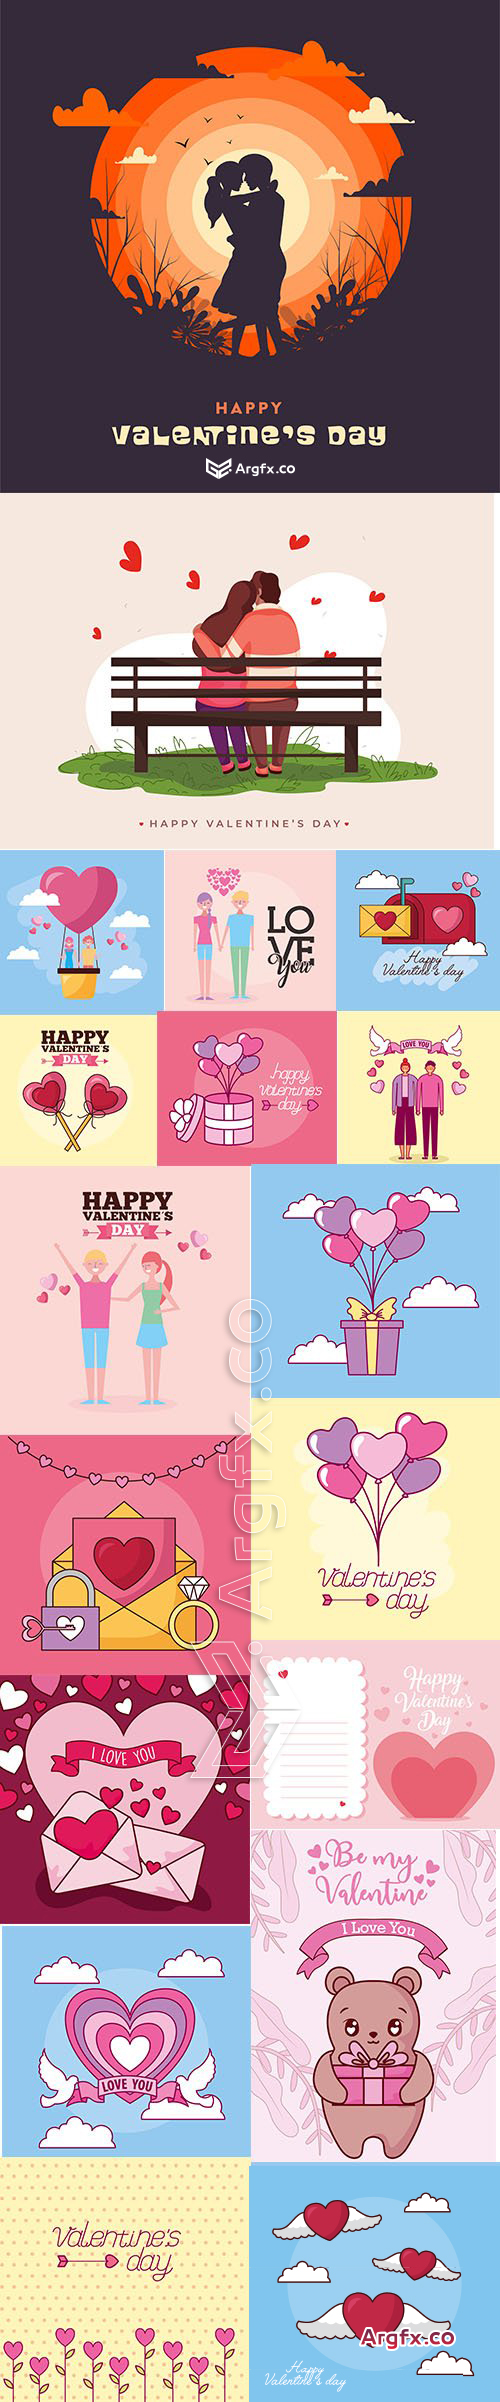 Vector Set of Romantic Valentines Day Illustrations Vol 9